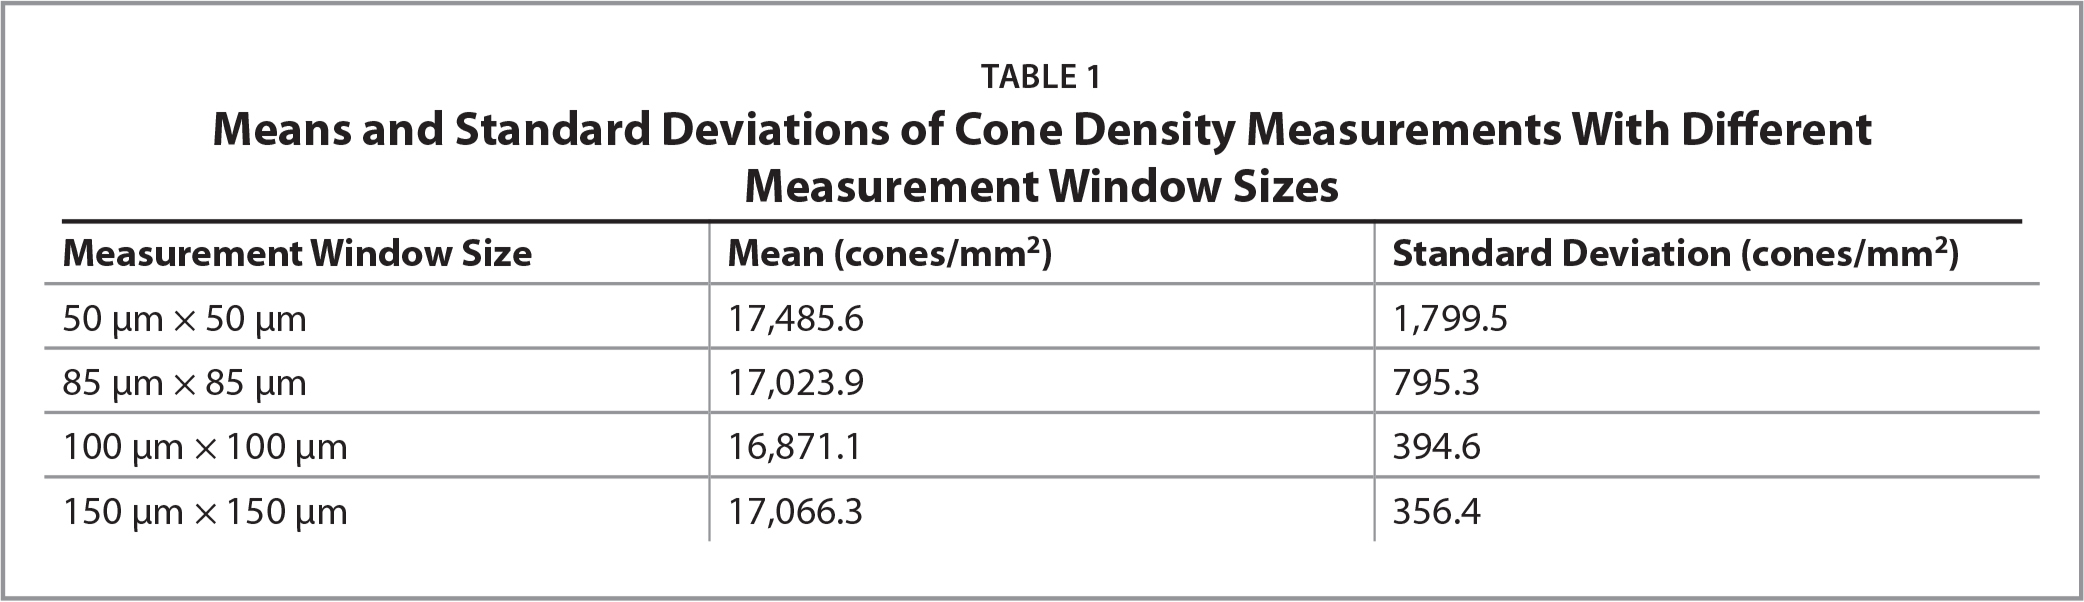 Means and Standard Deviations of Cone Density Measurements With Different Measurement Window Sizes